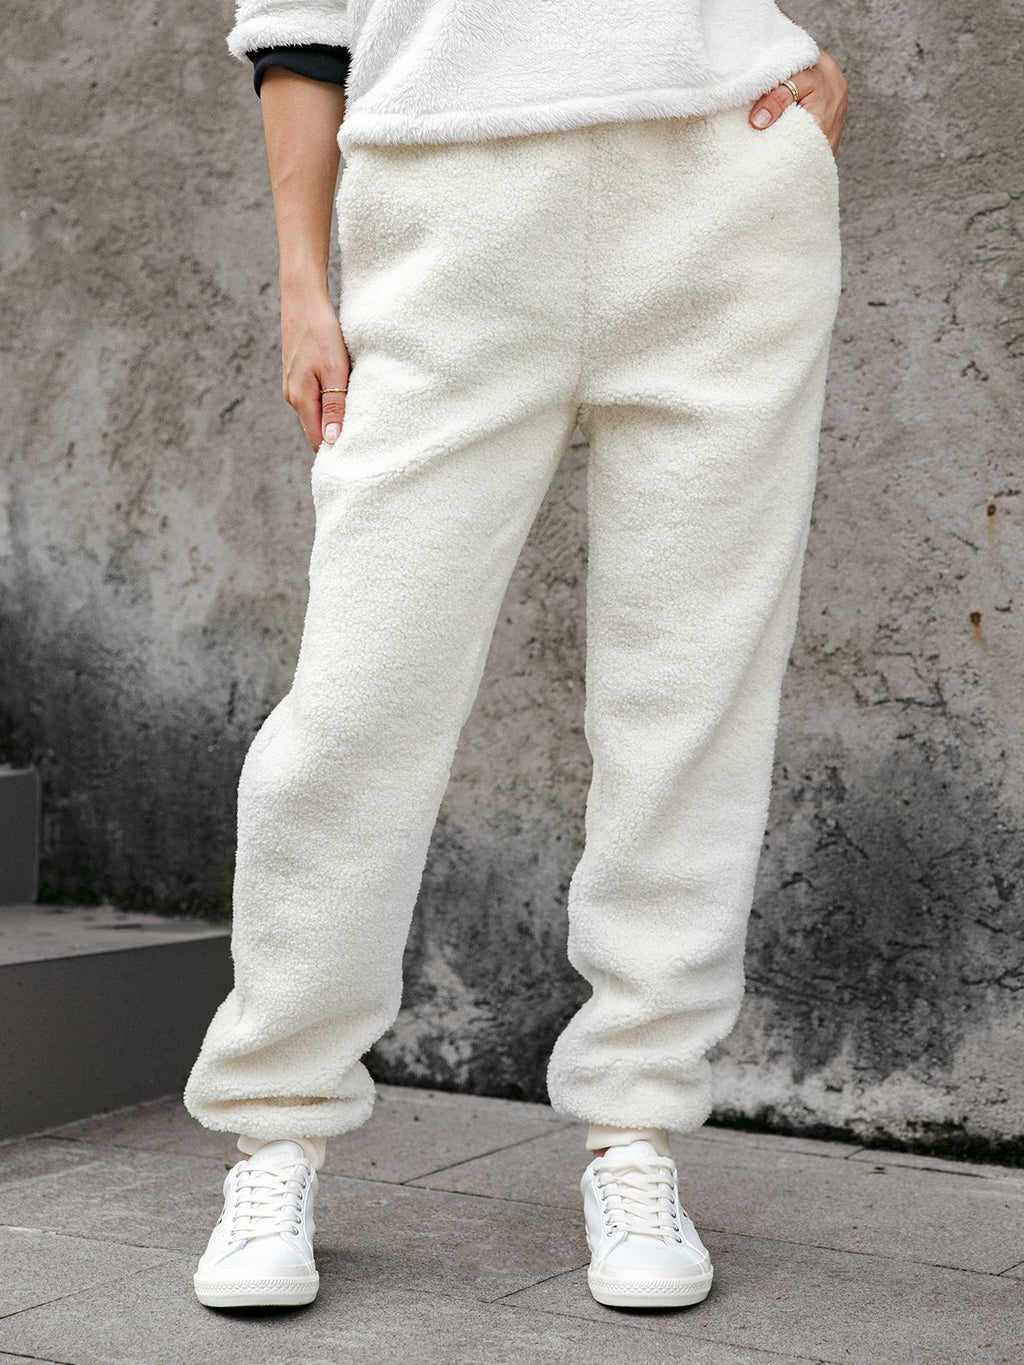 Casual Plain Pockets Fluffy Women's Pants